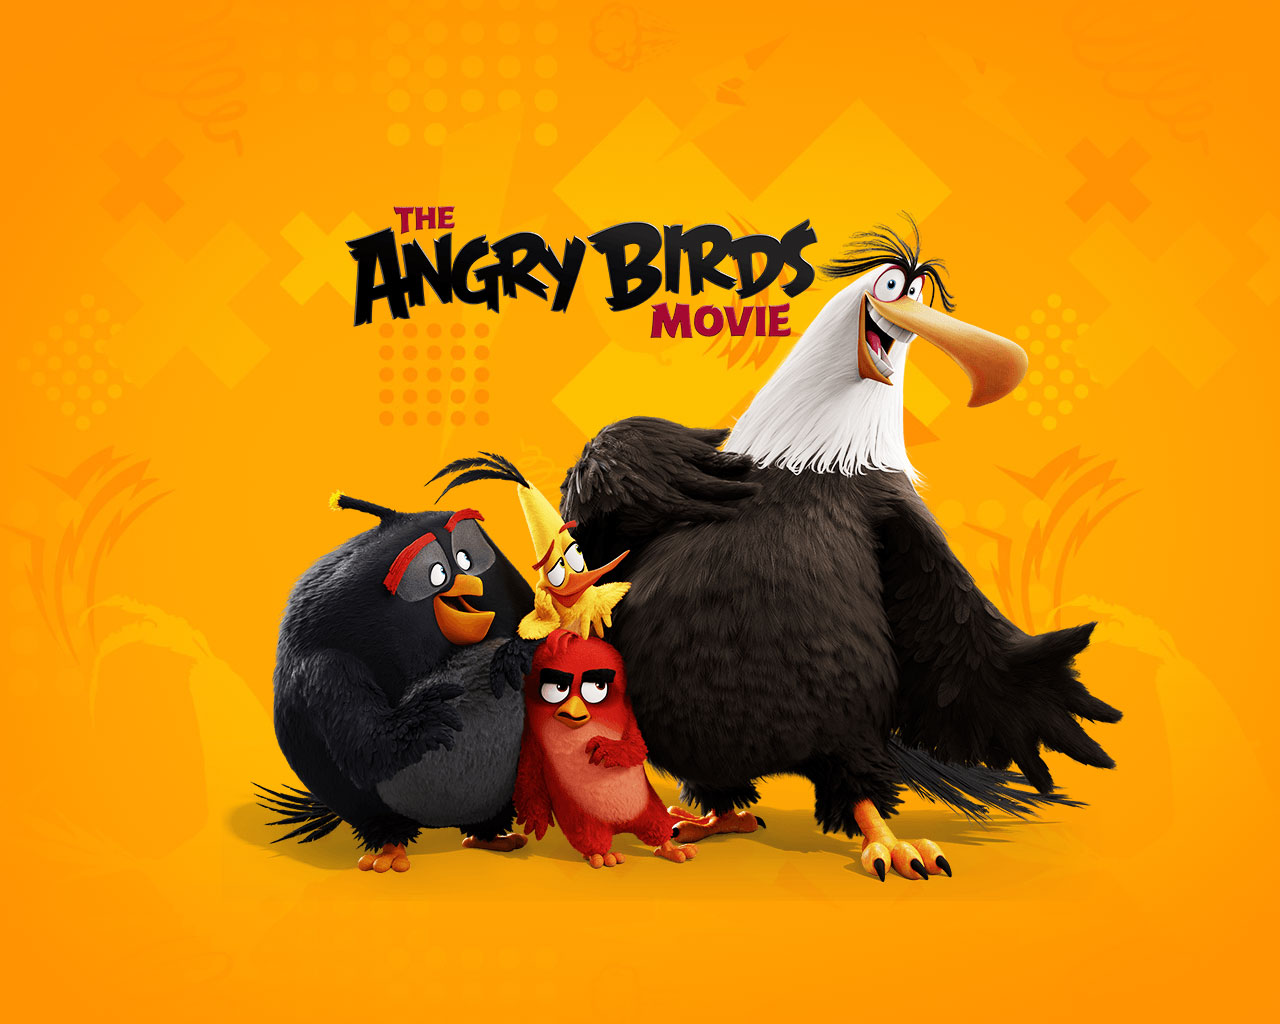 Poppy Wallpaper For Iphone The Angry Birds Movie 2016 Hd Desktop Iphone Amp Ipad